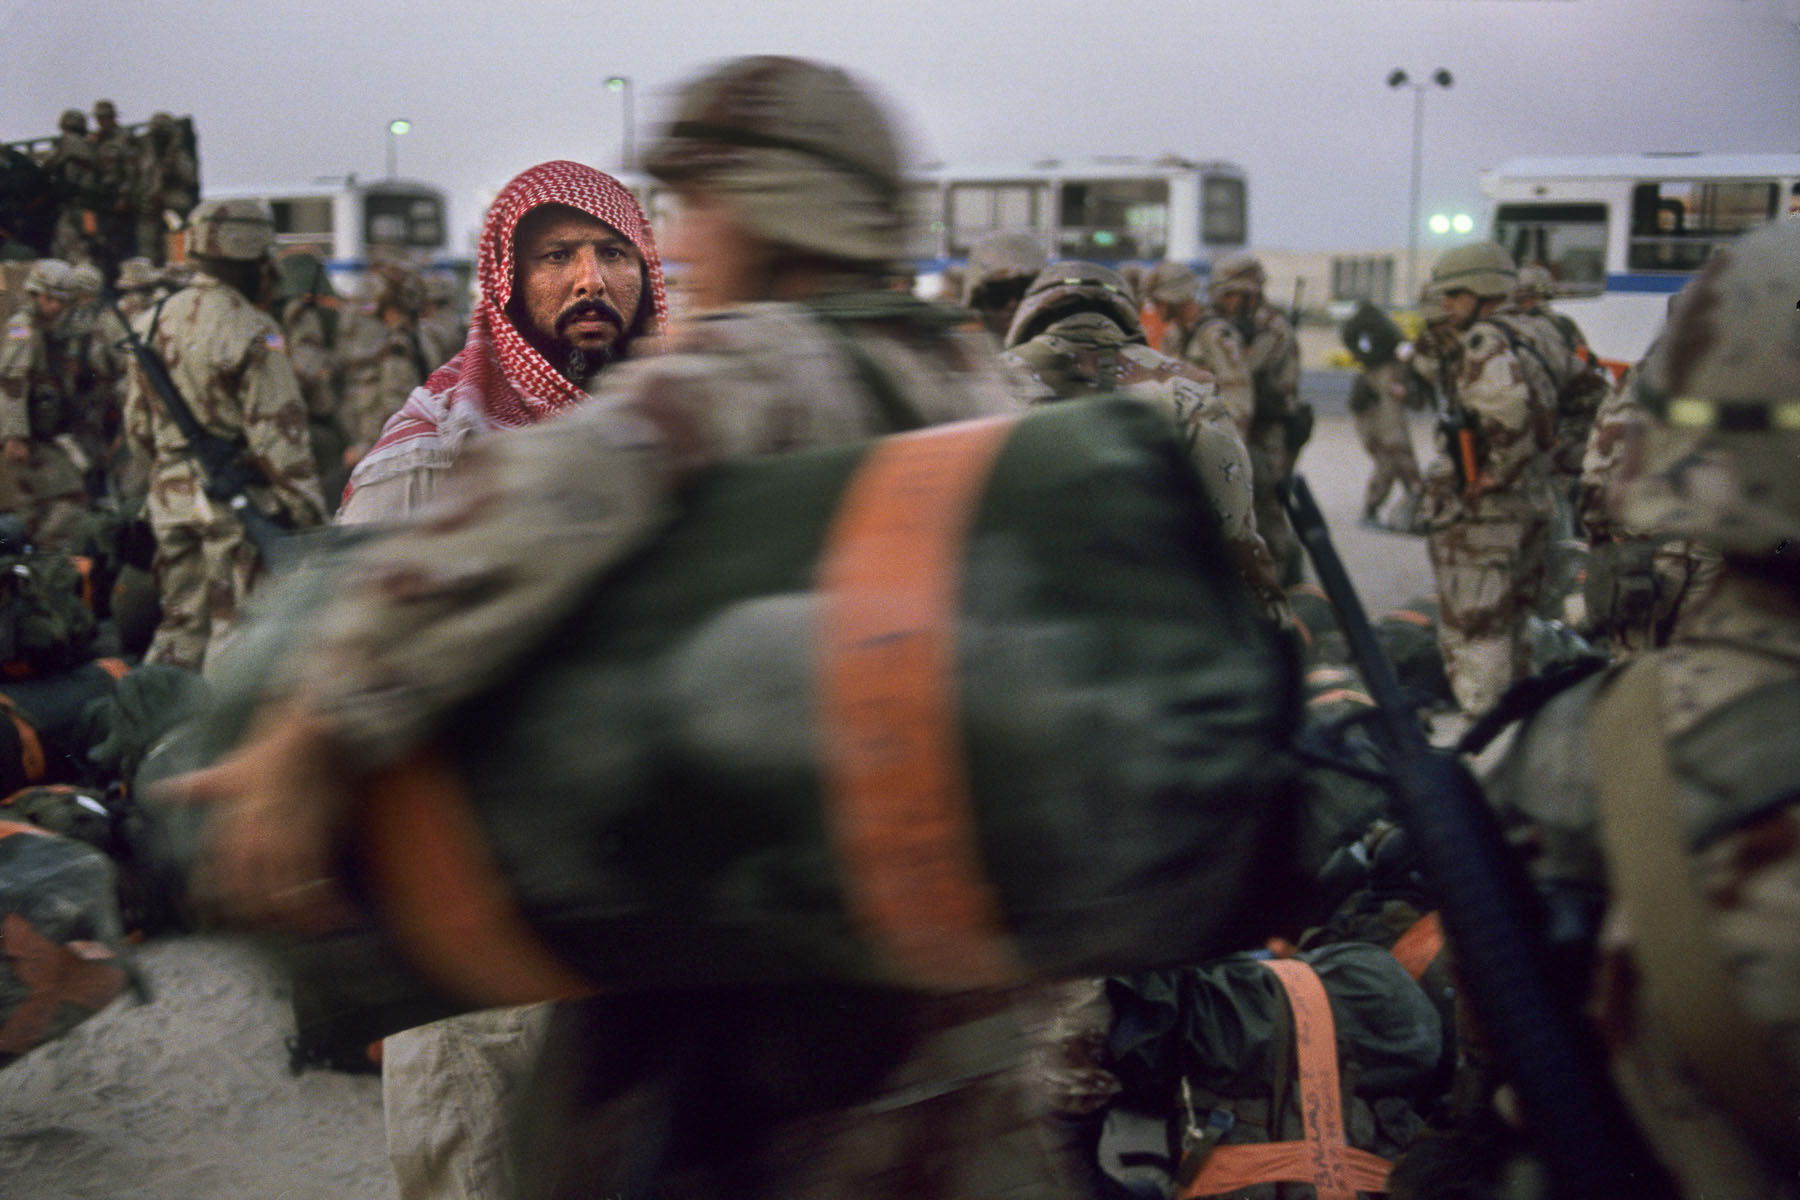 A Saudi Arabia citizen at the arrival of the US Air Force troops in August 1990